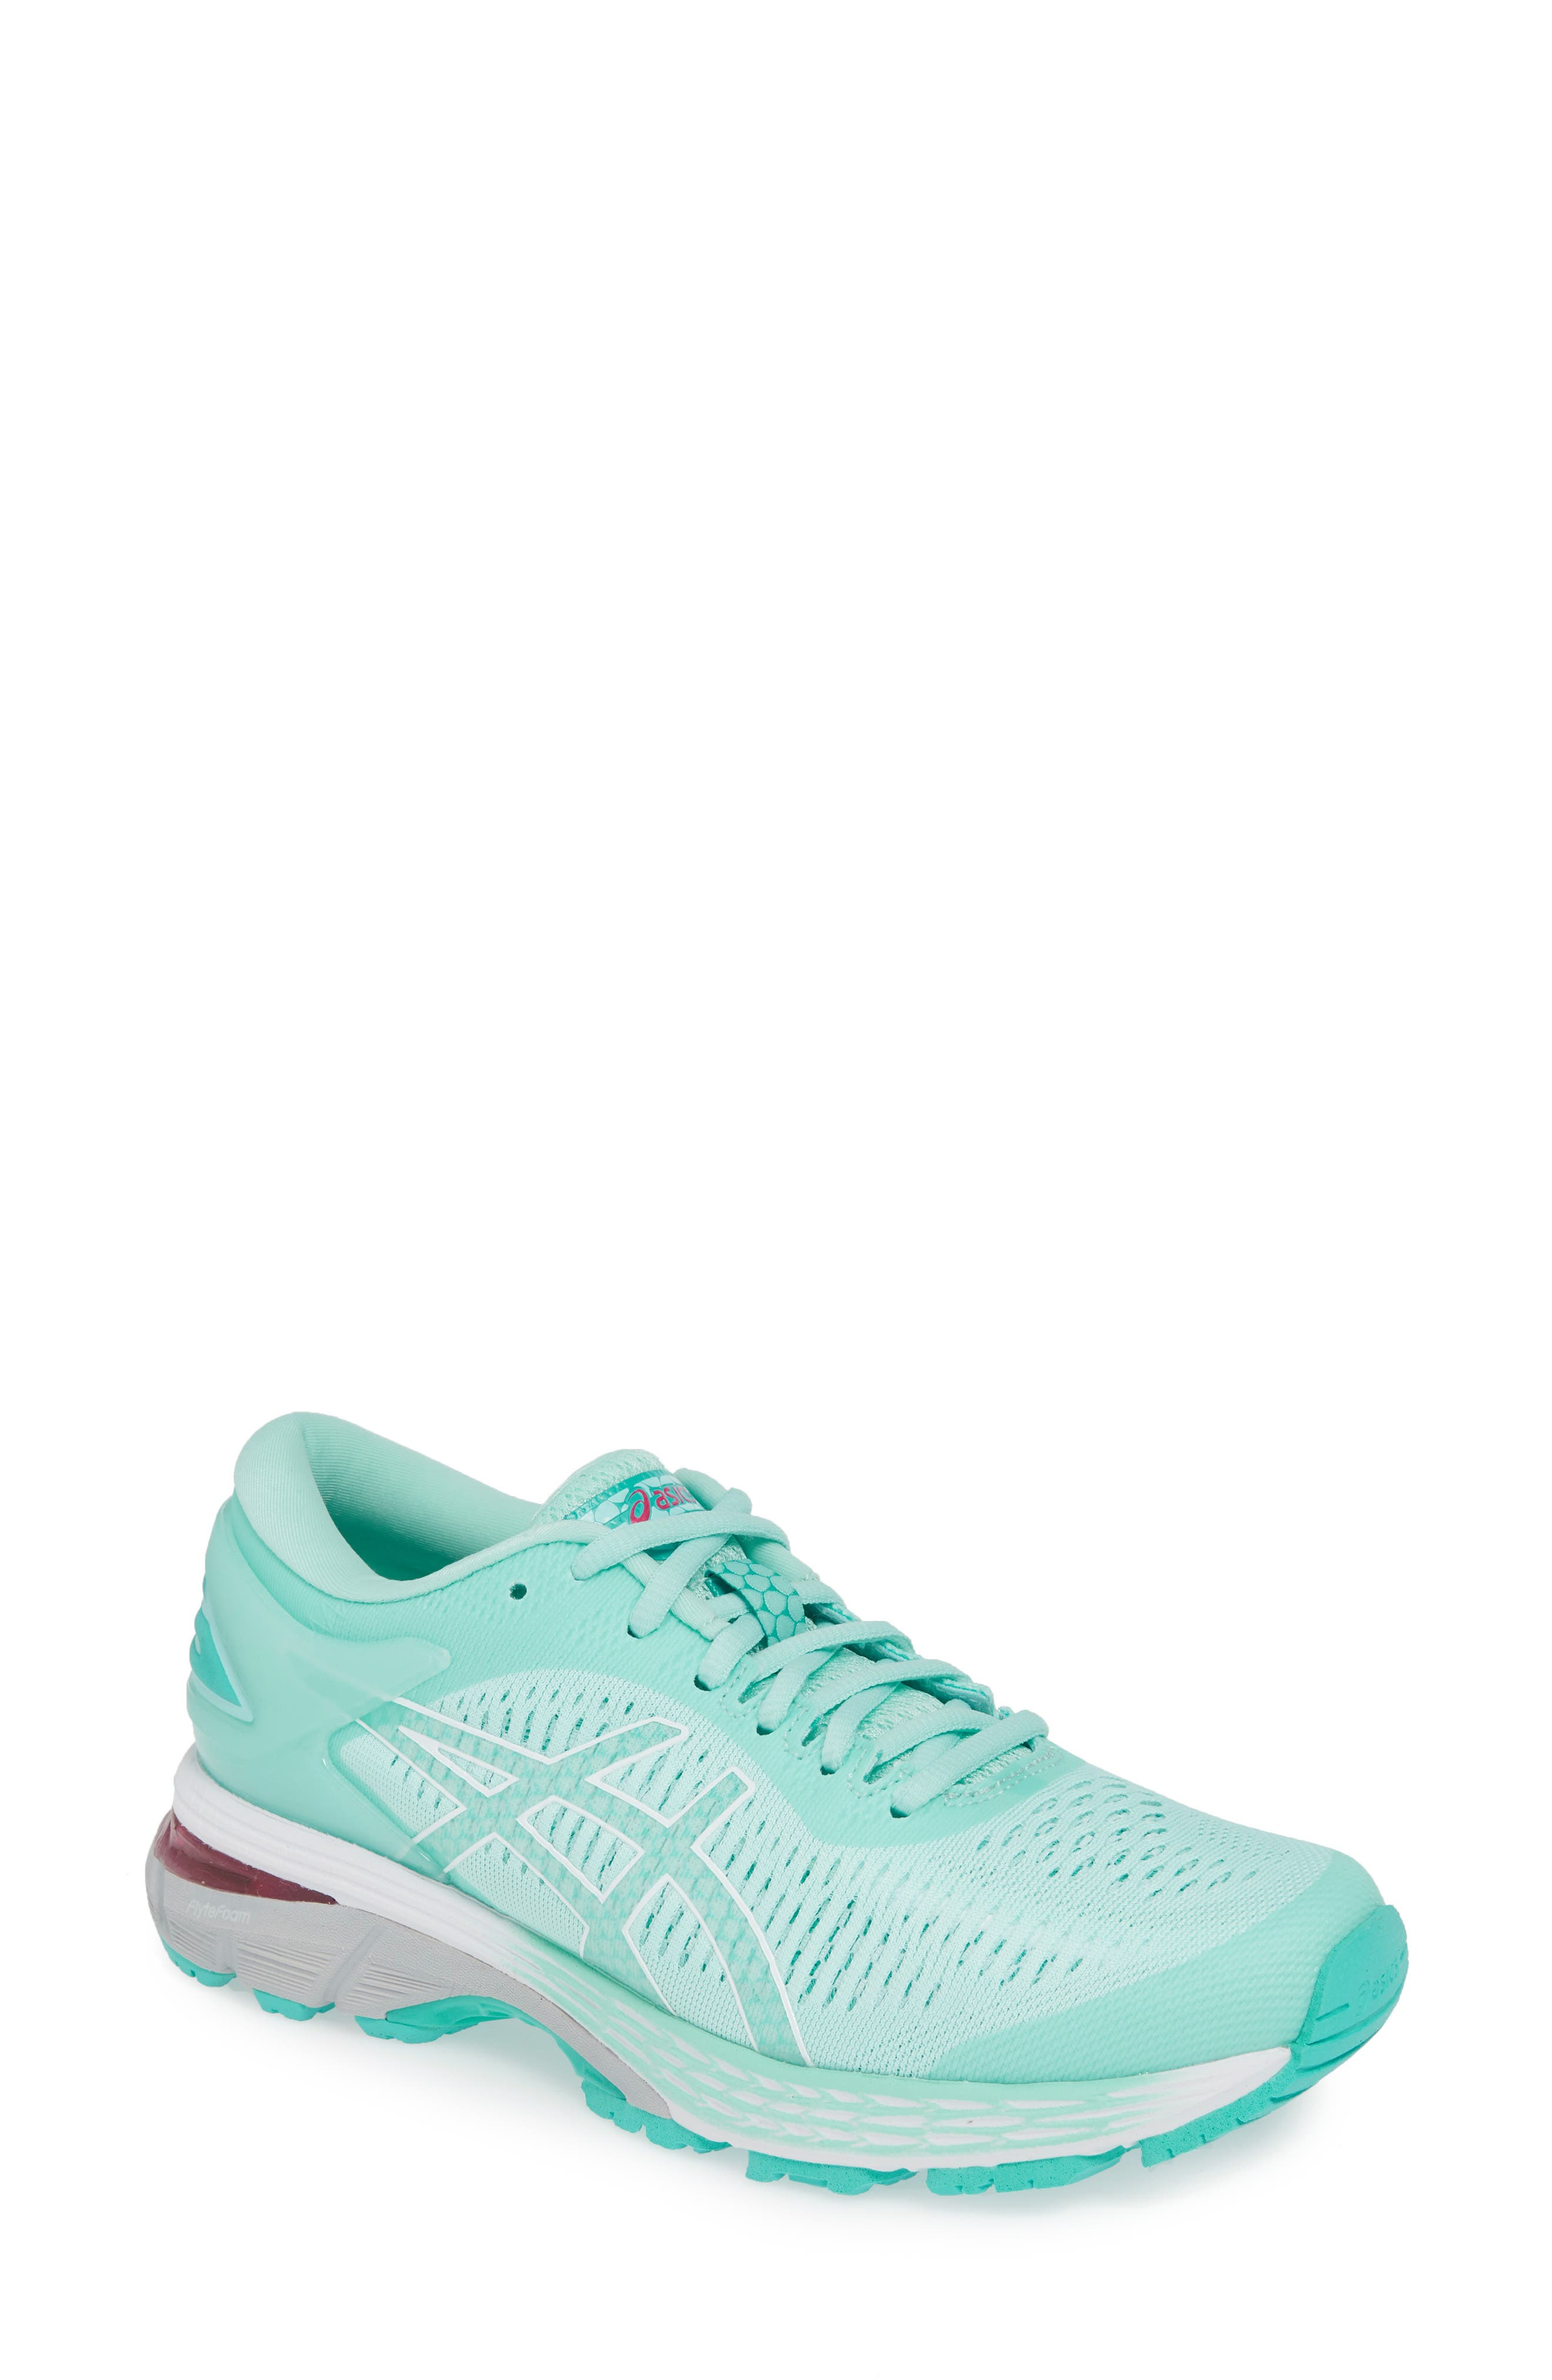 ASICS<SUP>®</SUP> GEL-Kayano<sup>®</sup> 25 Running Shoe, Main, color, ICY MORNING/ SEA GLASS